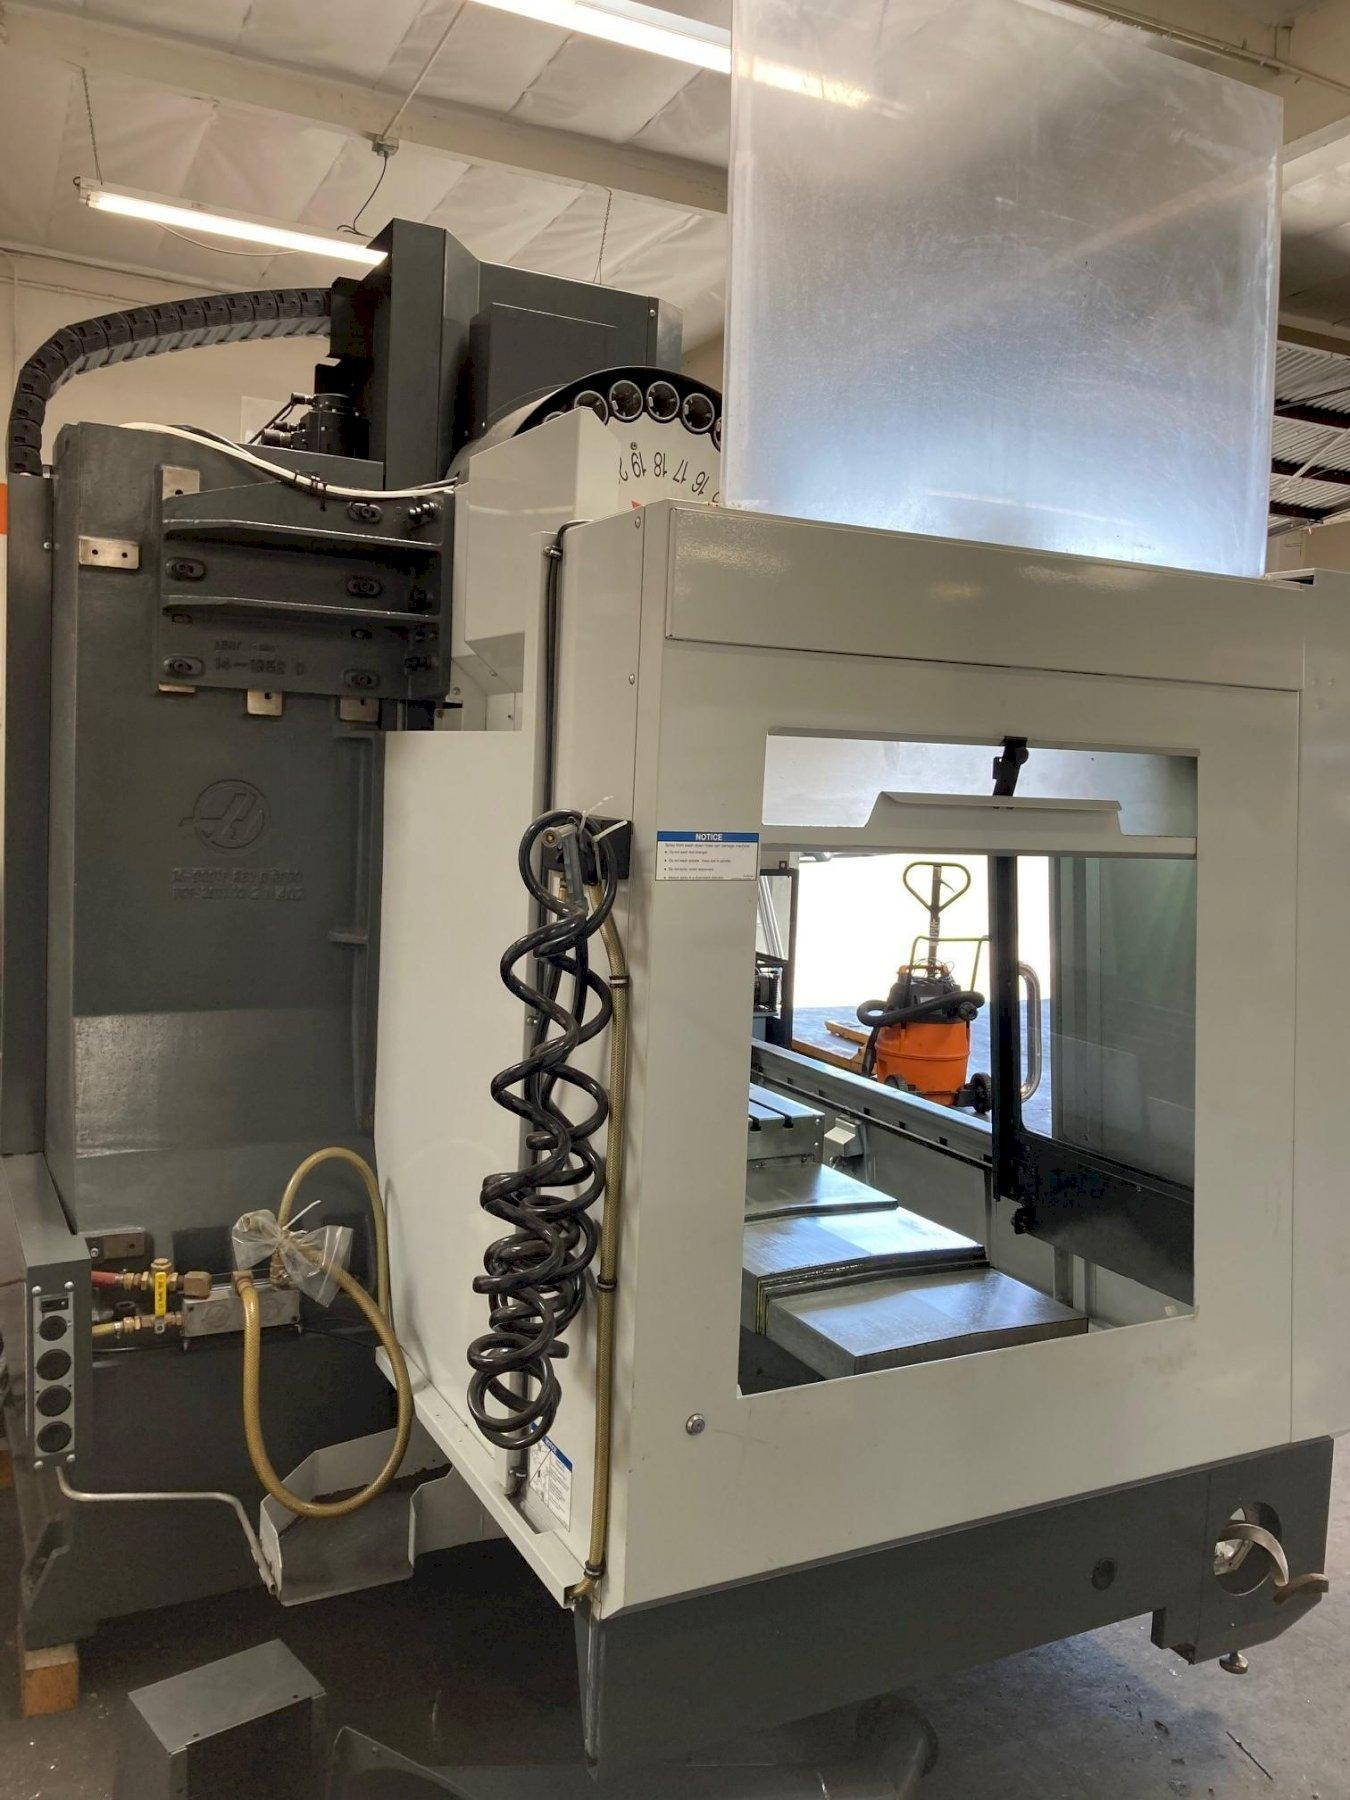 Haas VF-3 VMC 2012 with: Haas CNC Control, 24-Side Mount Tool Changer, 10,000 RPM Spindle, High Intensity Lighting, Mounted Tool Holder, Chip Auger, and Coolant Tank.